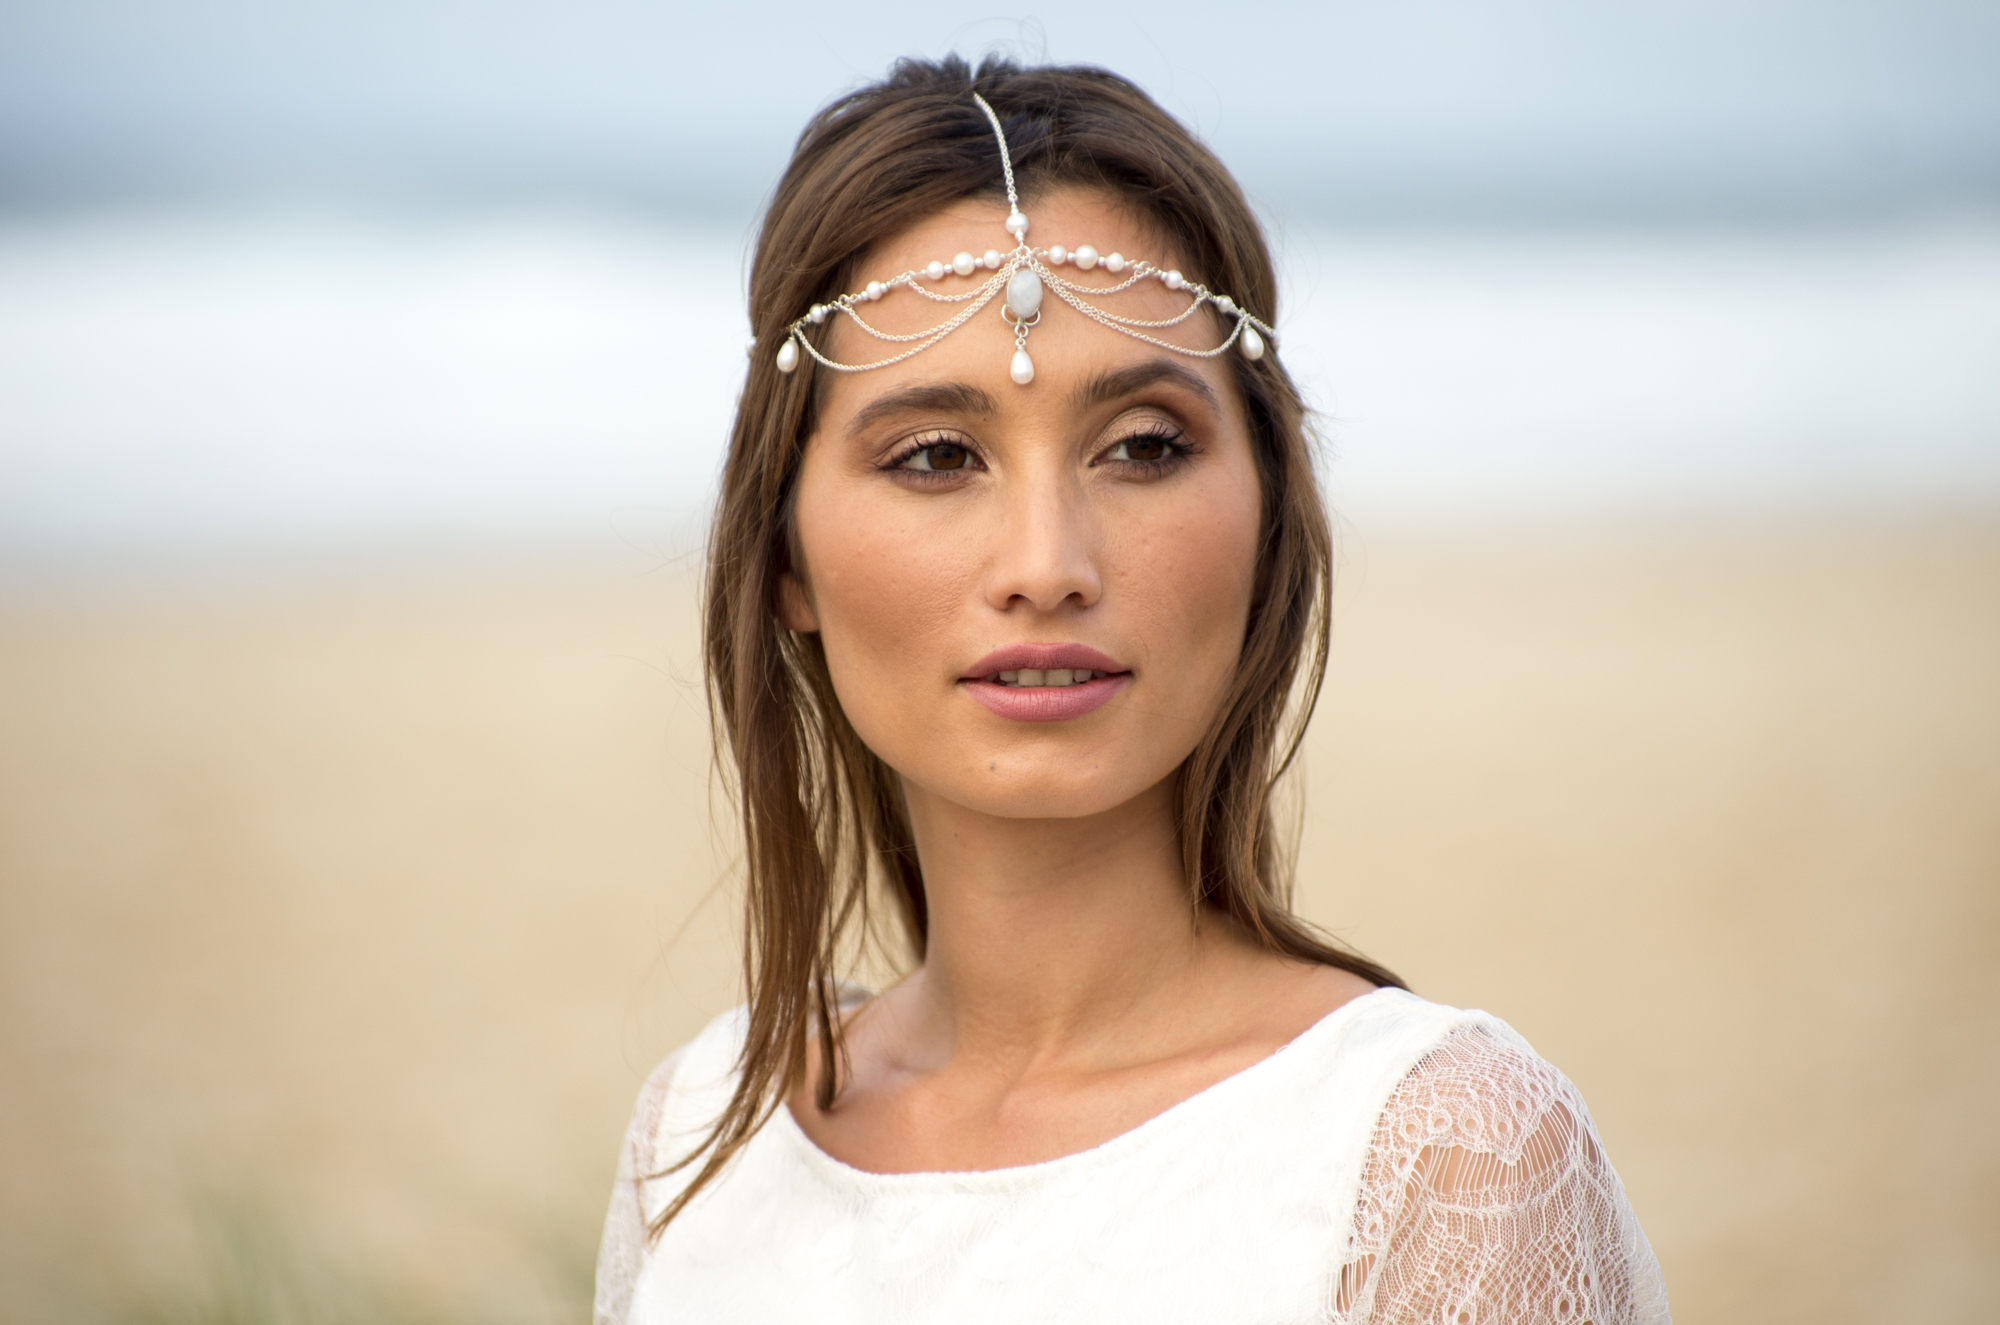 Komorebi Bride headpiece pearl Siren of the Sea - L Townley photography.jpg